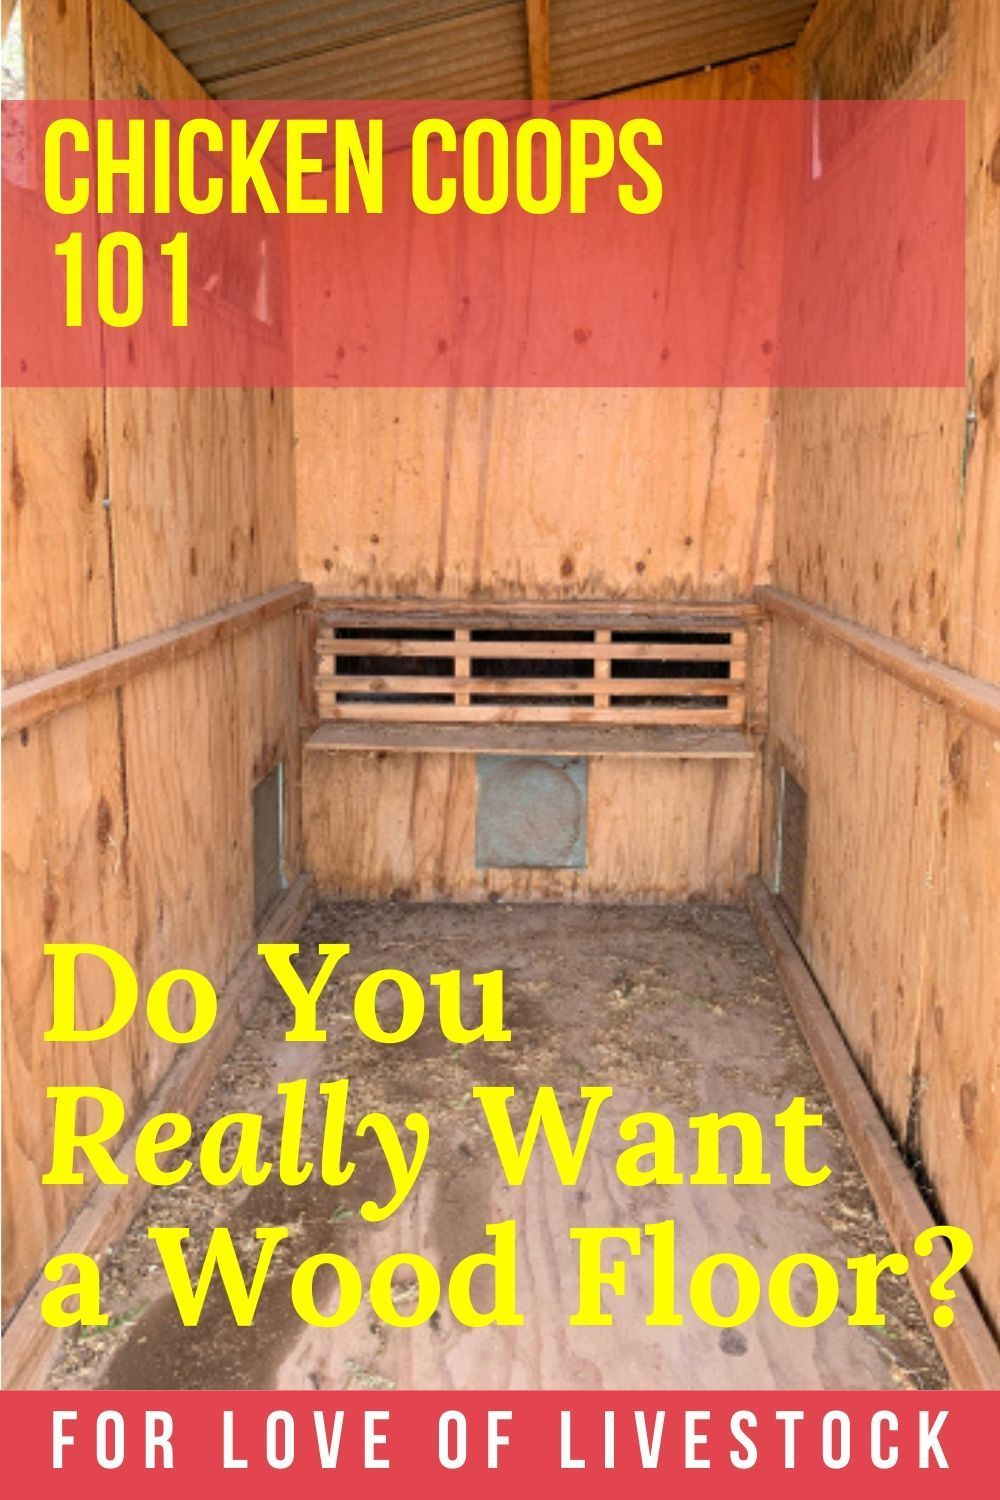 8 Chicken Coop Floor Options The Best Flooring Materials For Your Coop In 2020 Cute Chicken Coops Coop